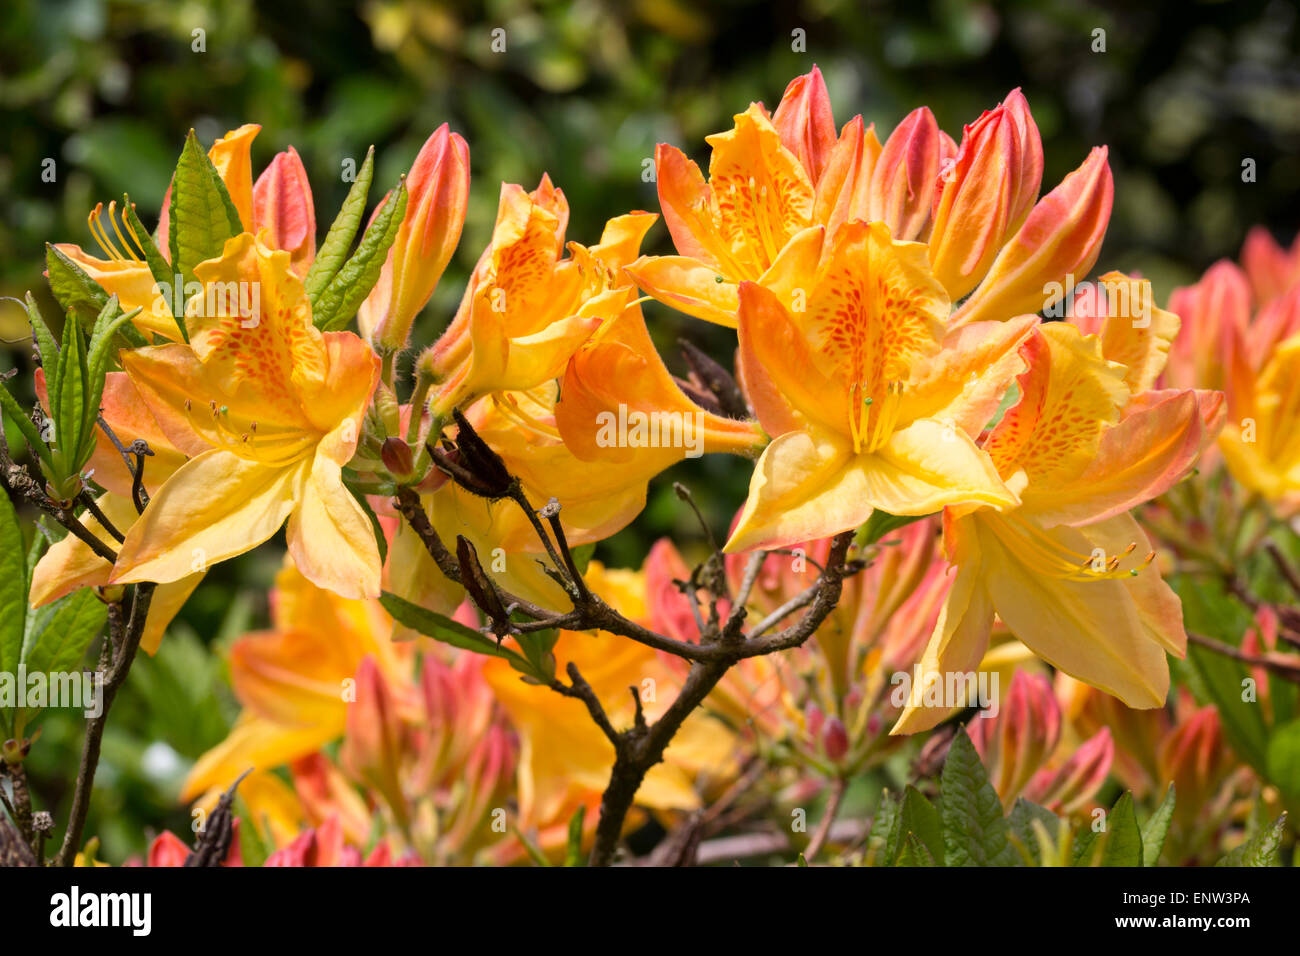 May flowers of the deciduous Azalea, Rhododendron 'Sunbeam' - Stock Image